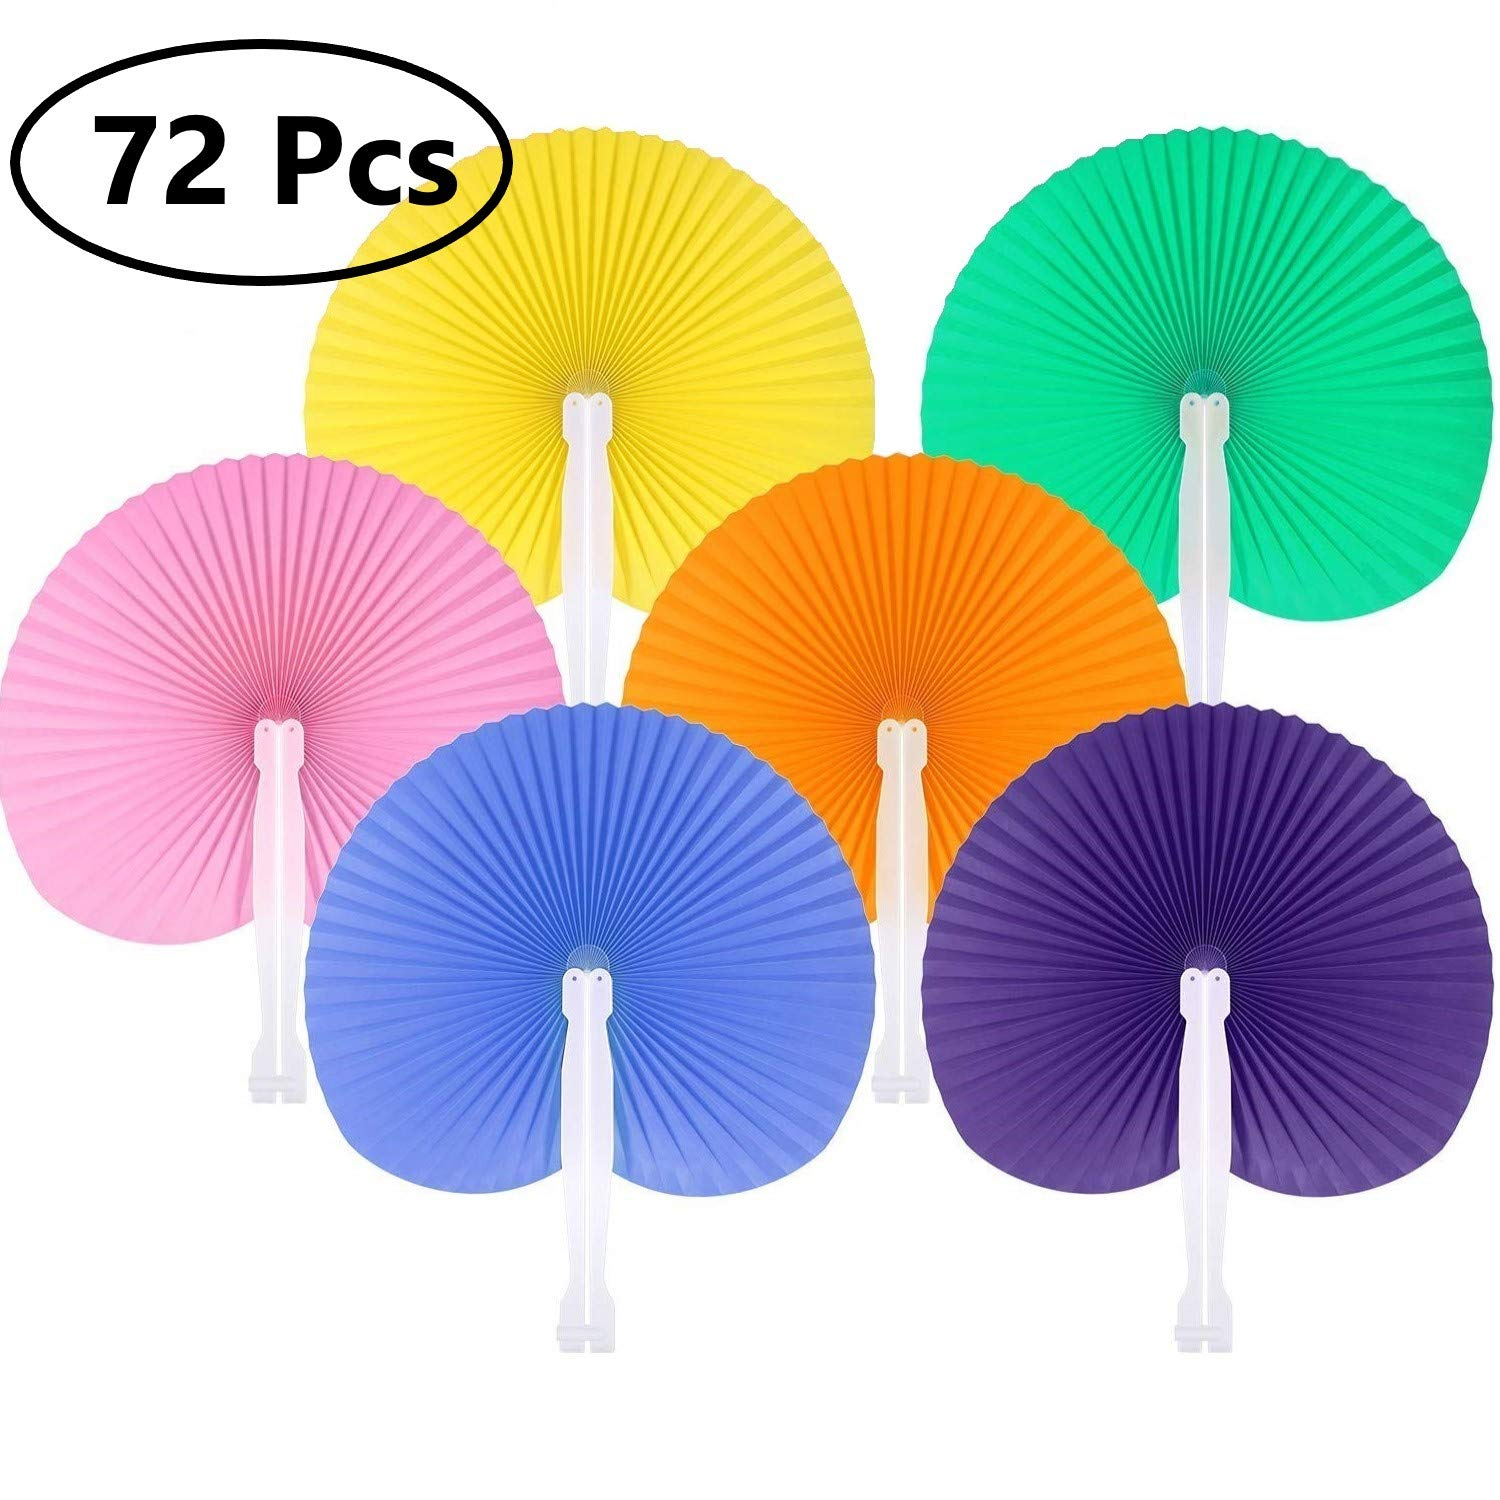 KONIBN 72 Pack Folding Fans Paper Fans Round Shaped Wedding Hand Fans with Plastic Handle for Wedding Favor Party Bag Filler (6 Colors) by KONIBN